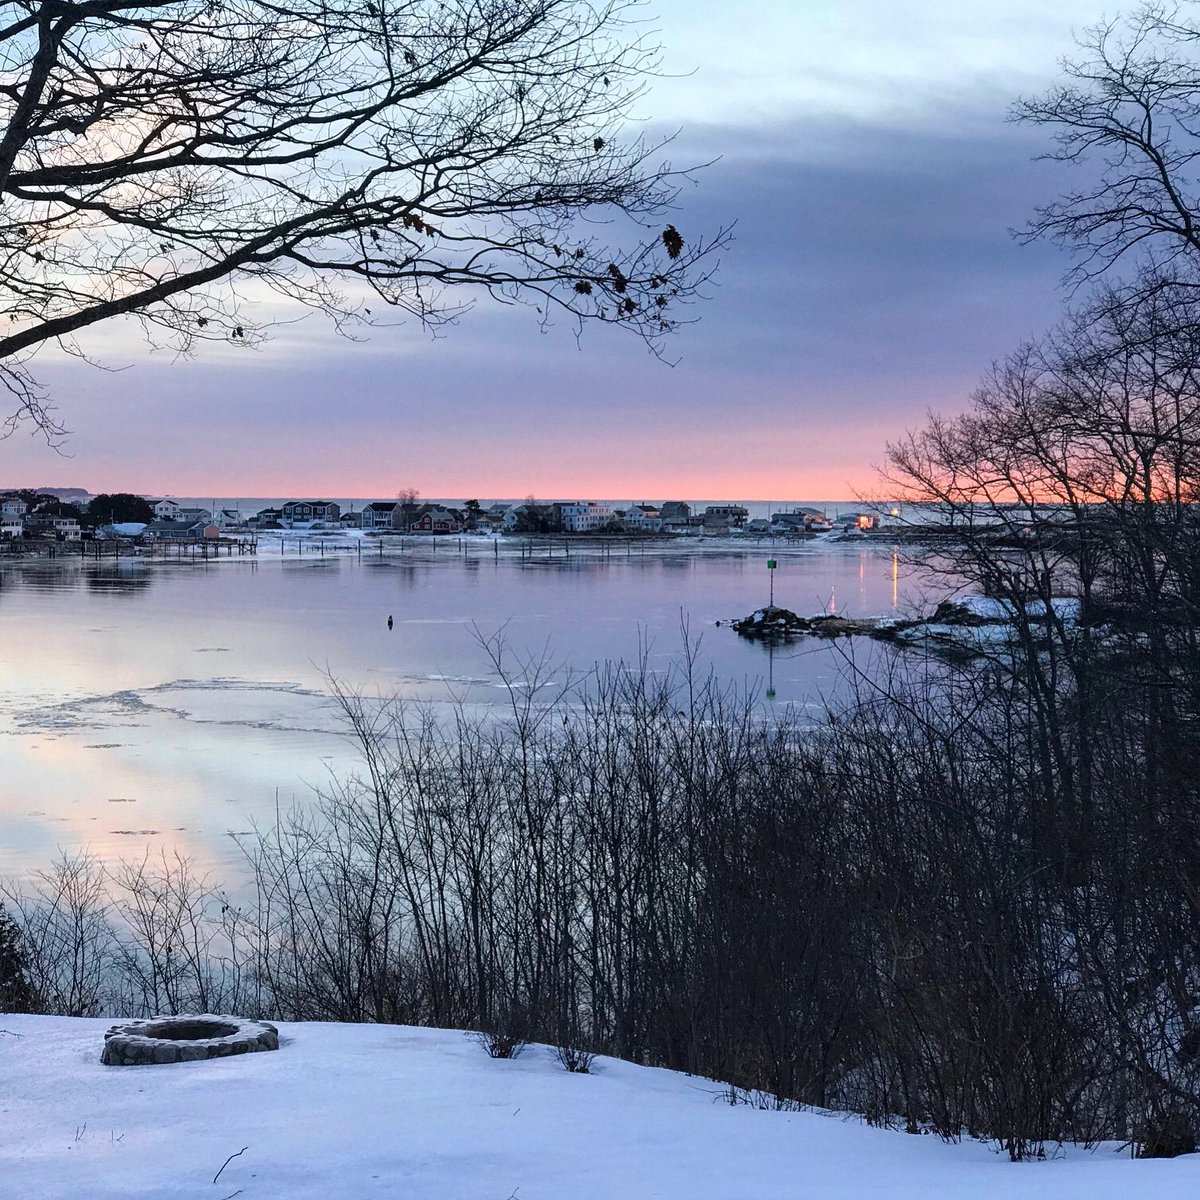 James Herbert On Twitter Mid January Sunrise From The Biddeford Campus I Am Still Awestruck Every Day By The Breathtaking Beauty Of Maine Mainesunrise Highered Https T Co Qmm8frsegp